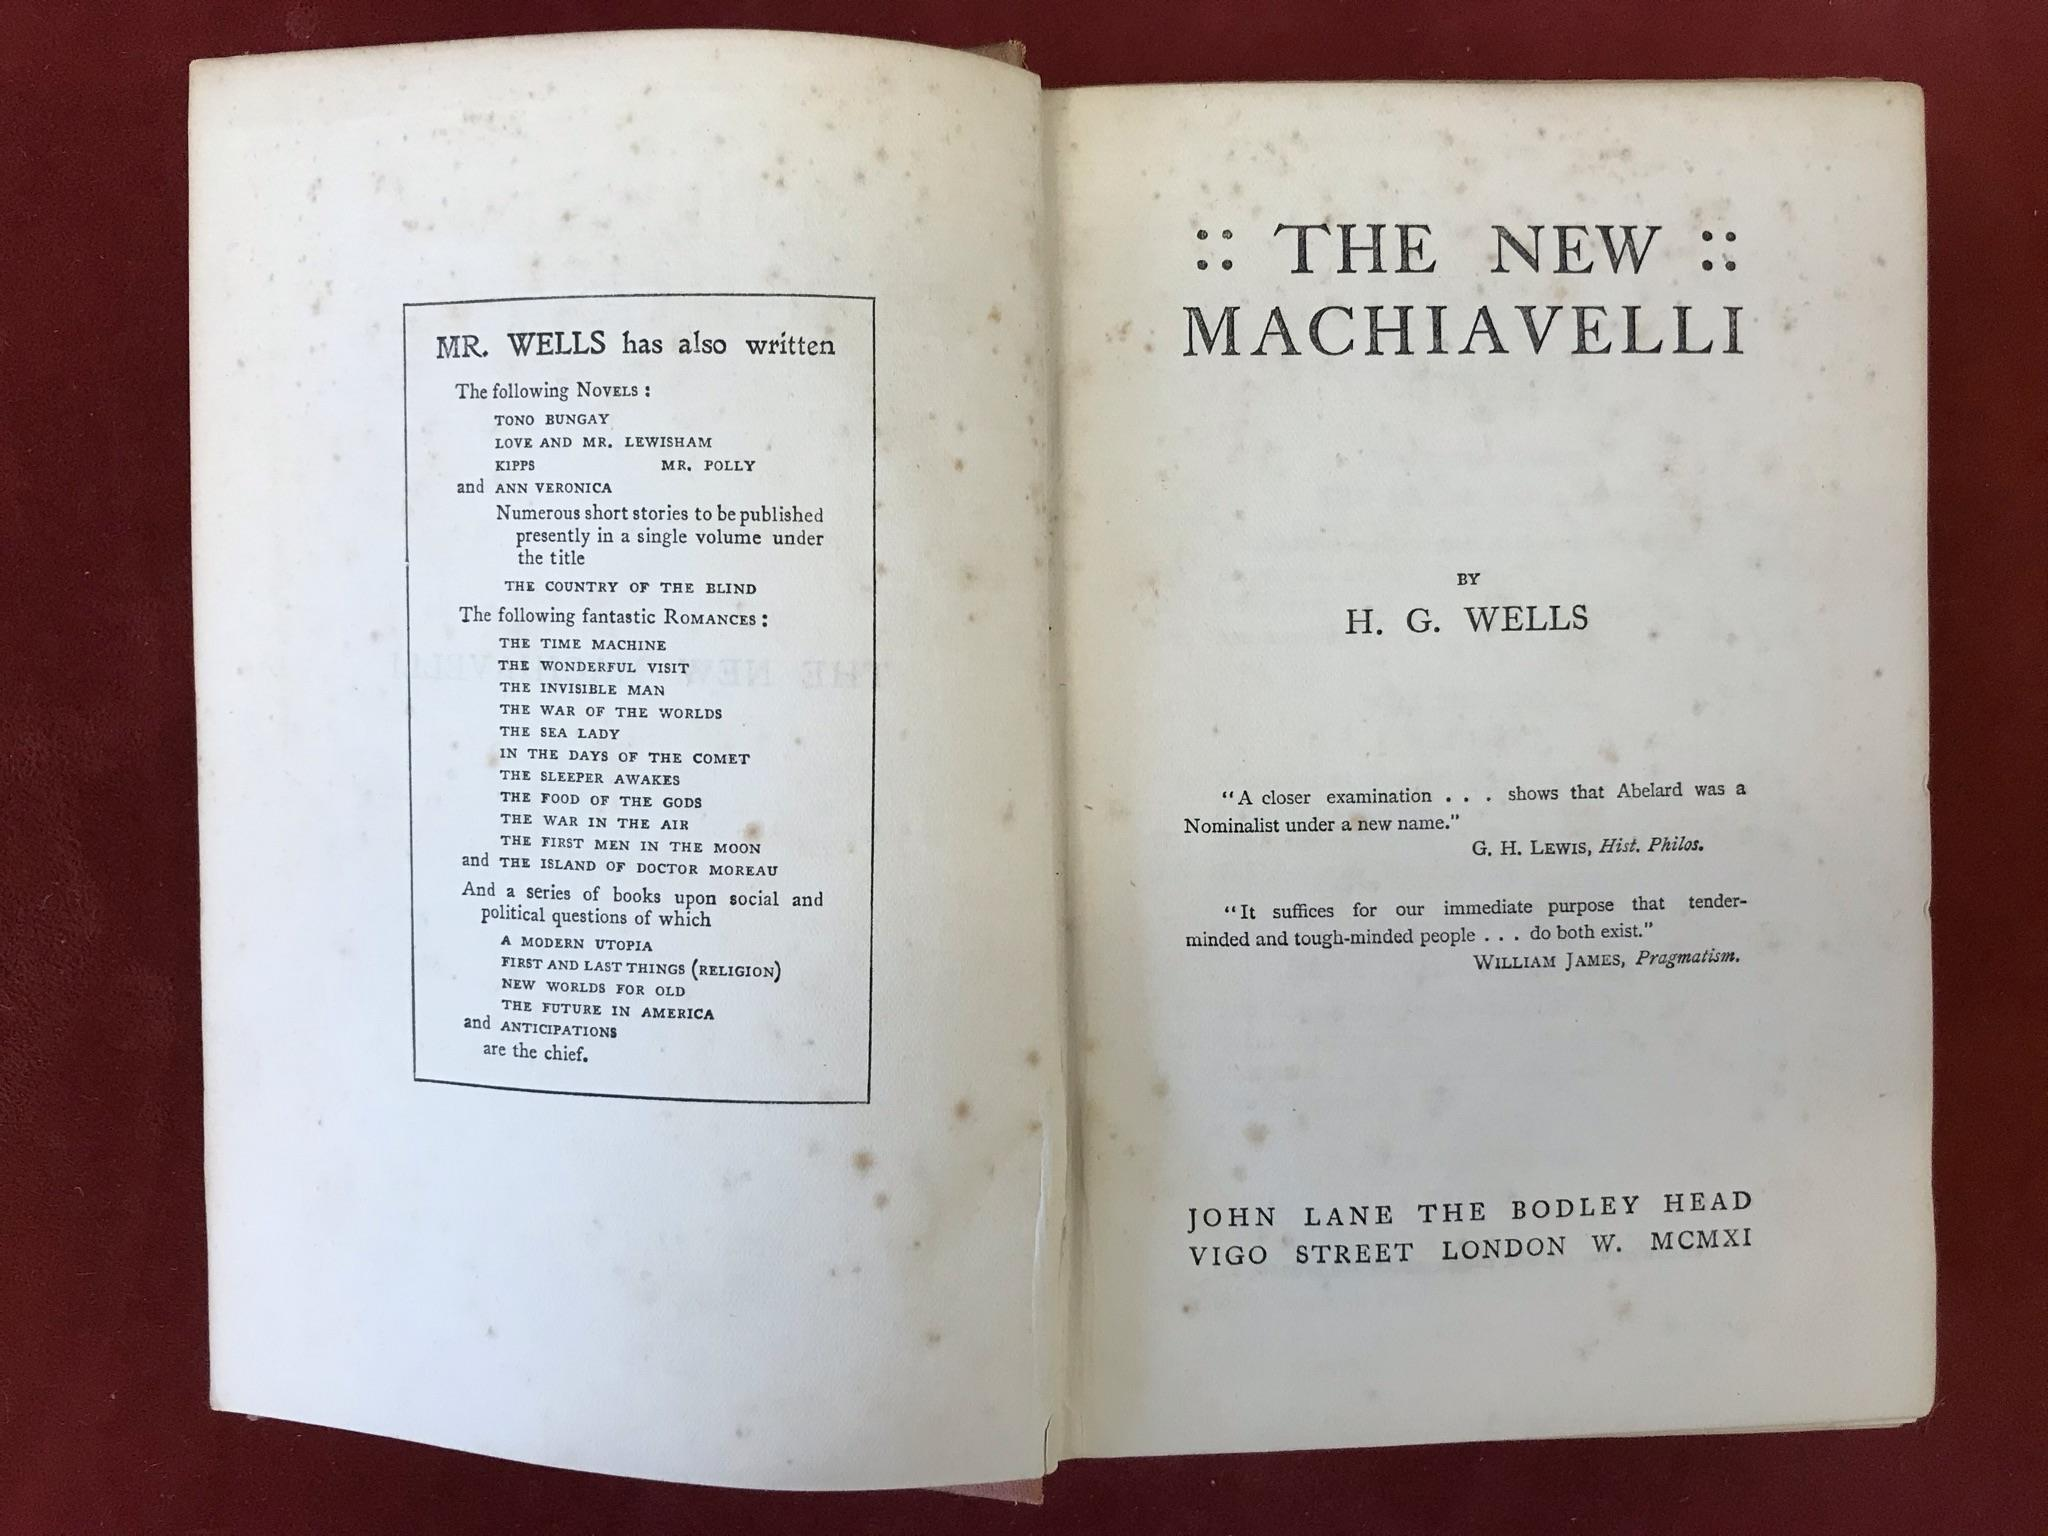 The New MachiavelliFirst edition, 1911 - Image 3 of 3